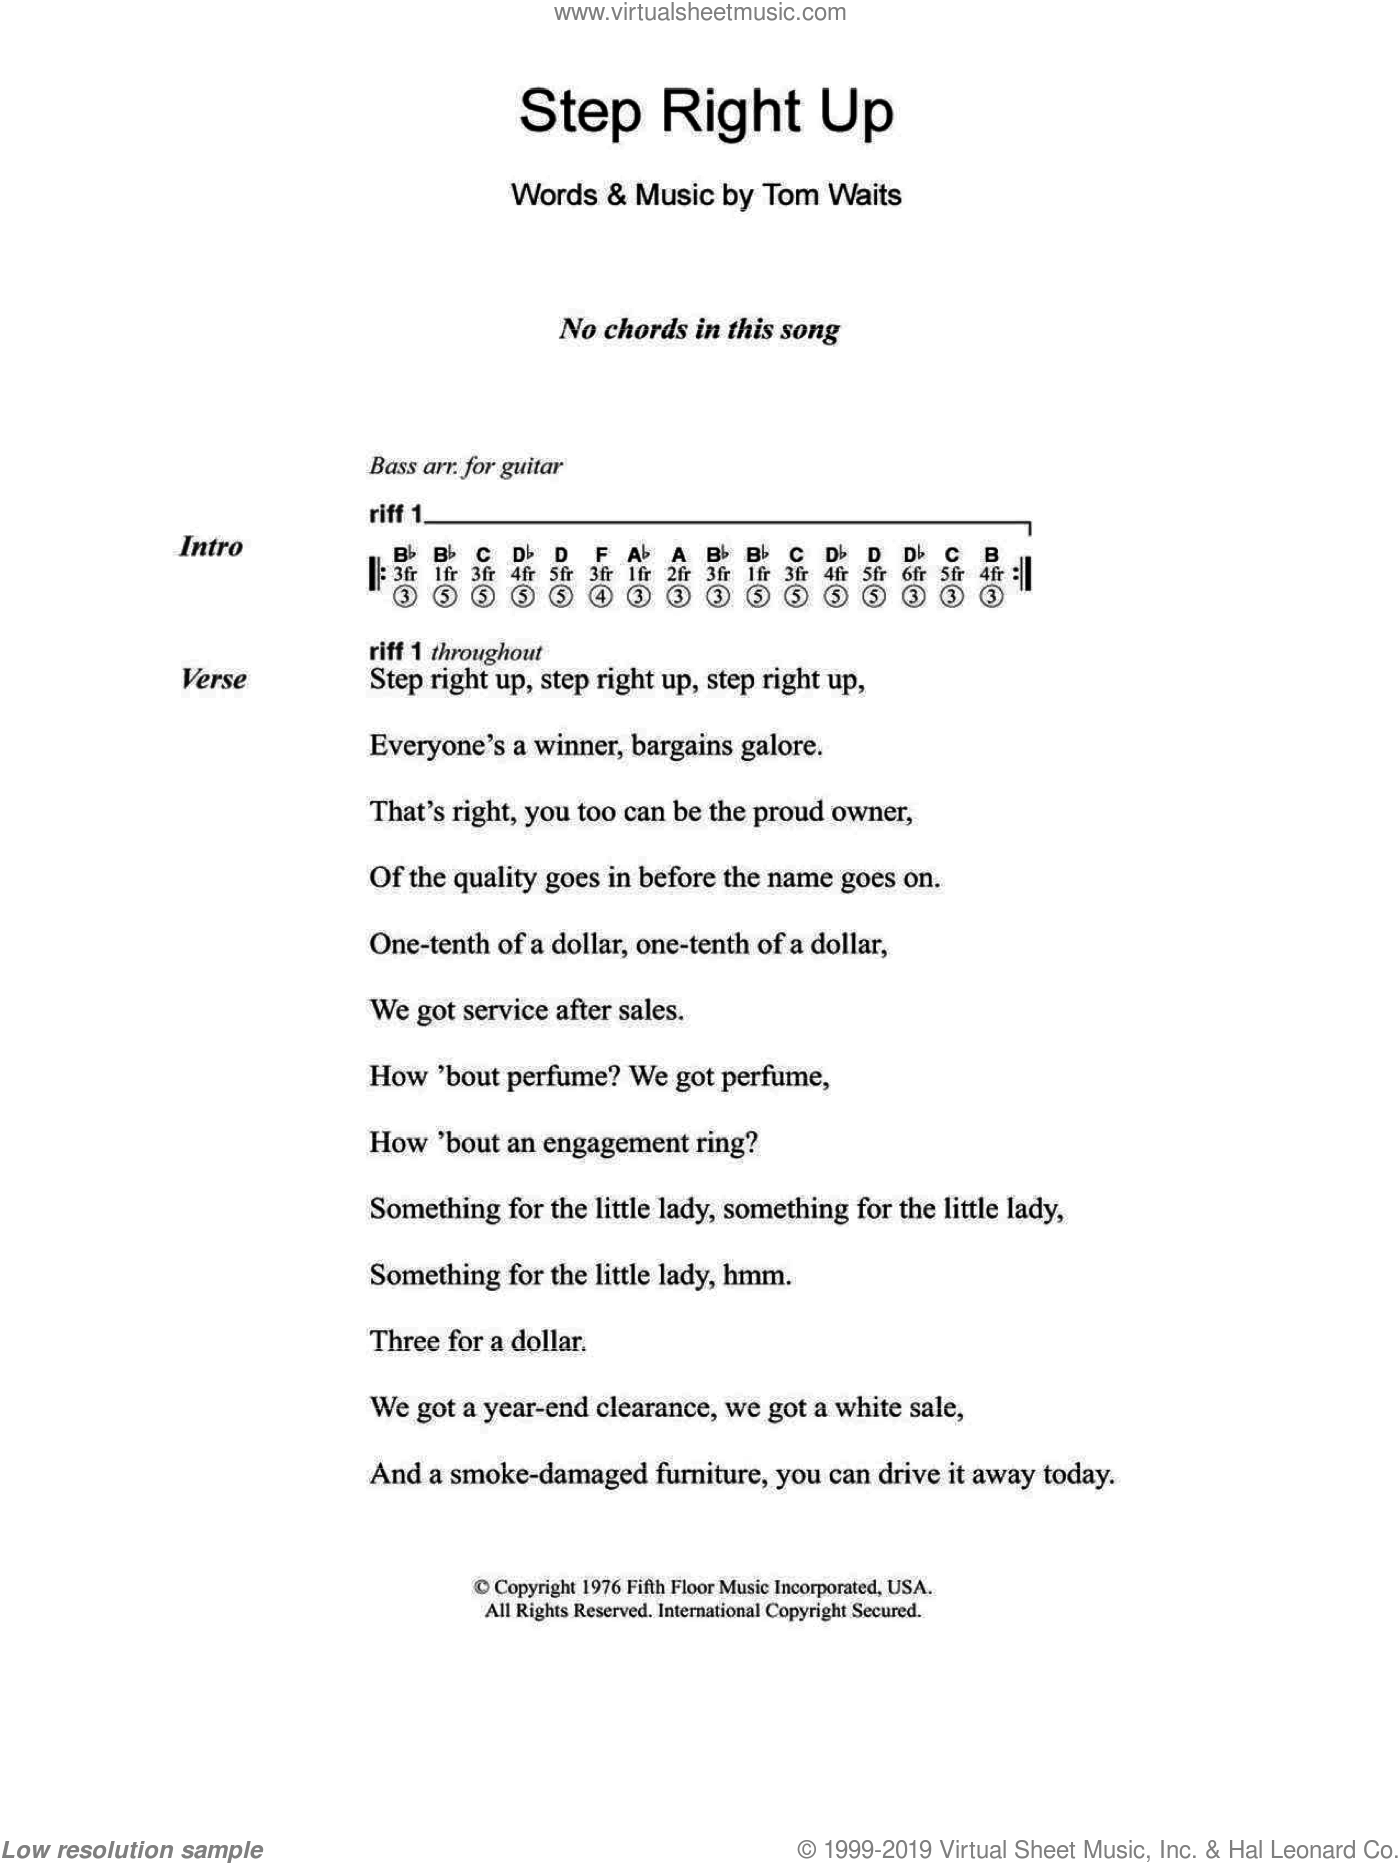 Waits Step Right Up Sheet Music For Guitar Chords Pdf